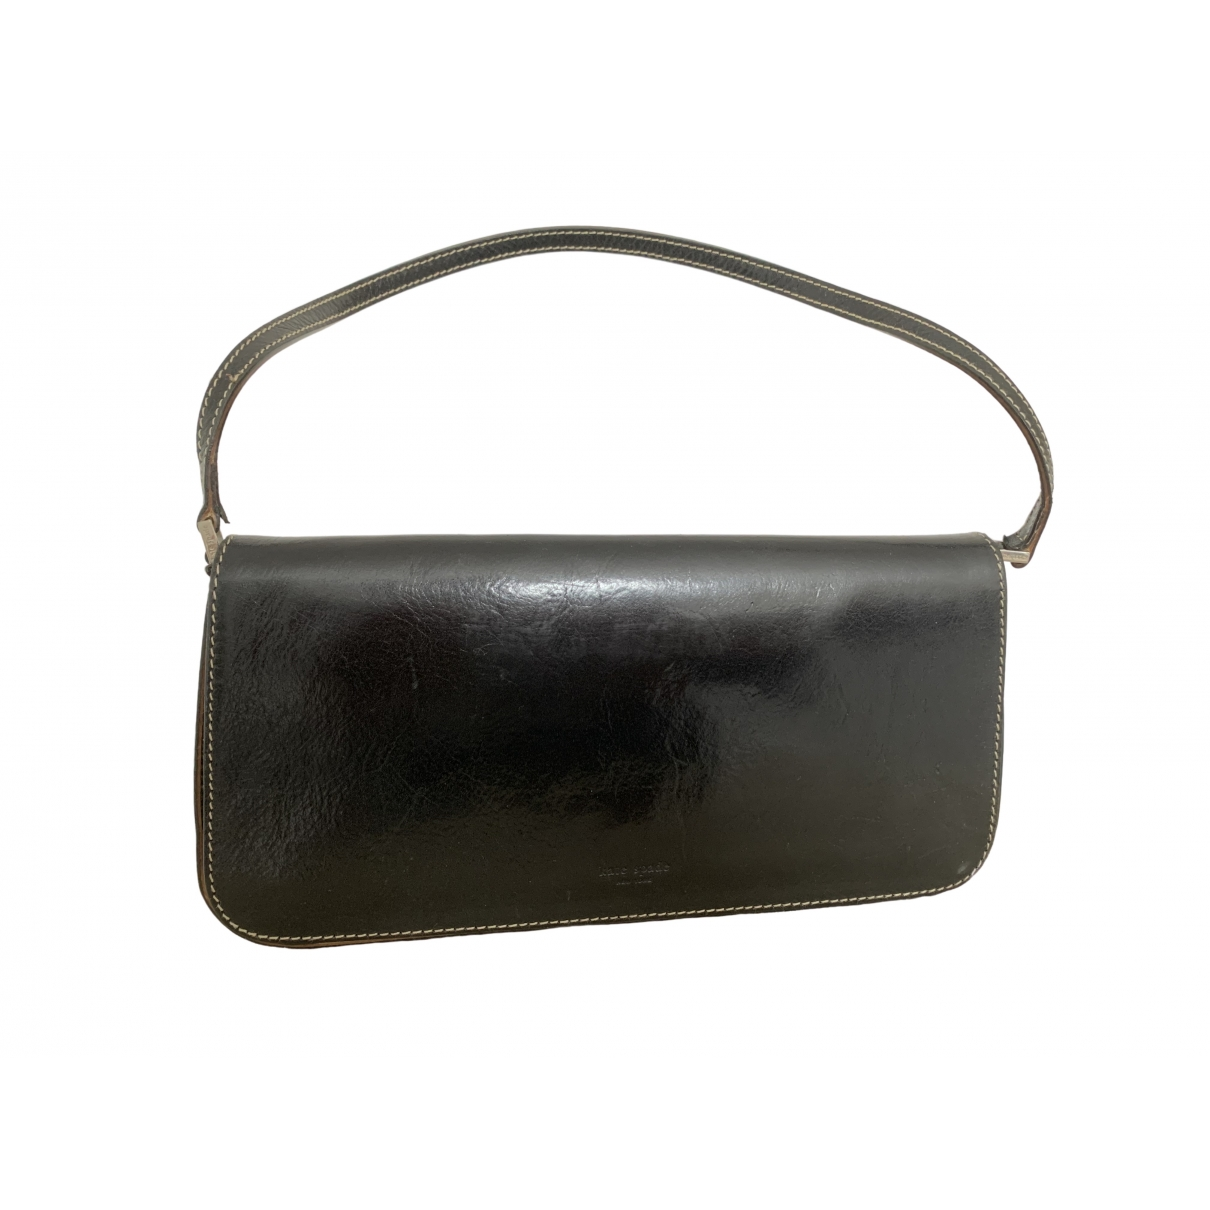 Kate Spade \N Black Leather handbag for Women \N